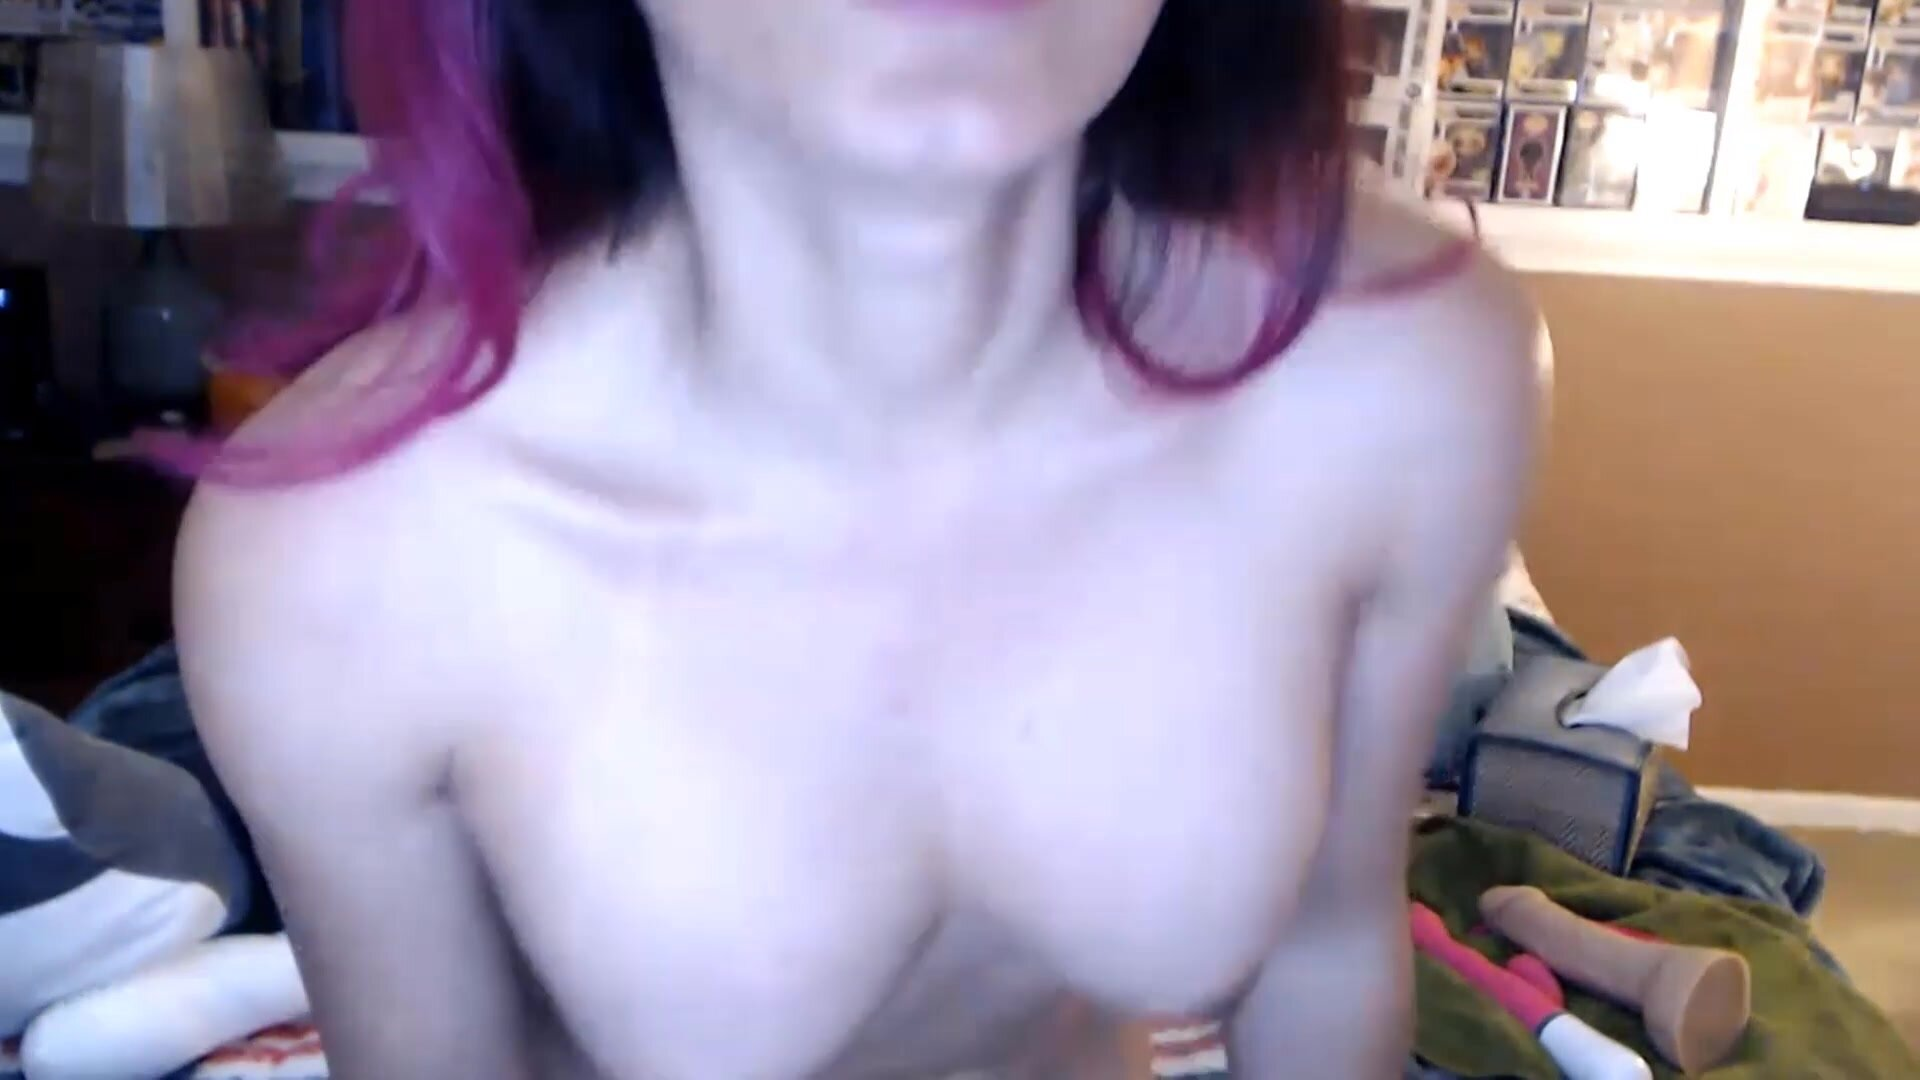 Asiatic good girl Nina with great boobies and tricky mind